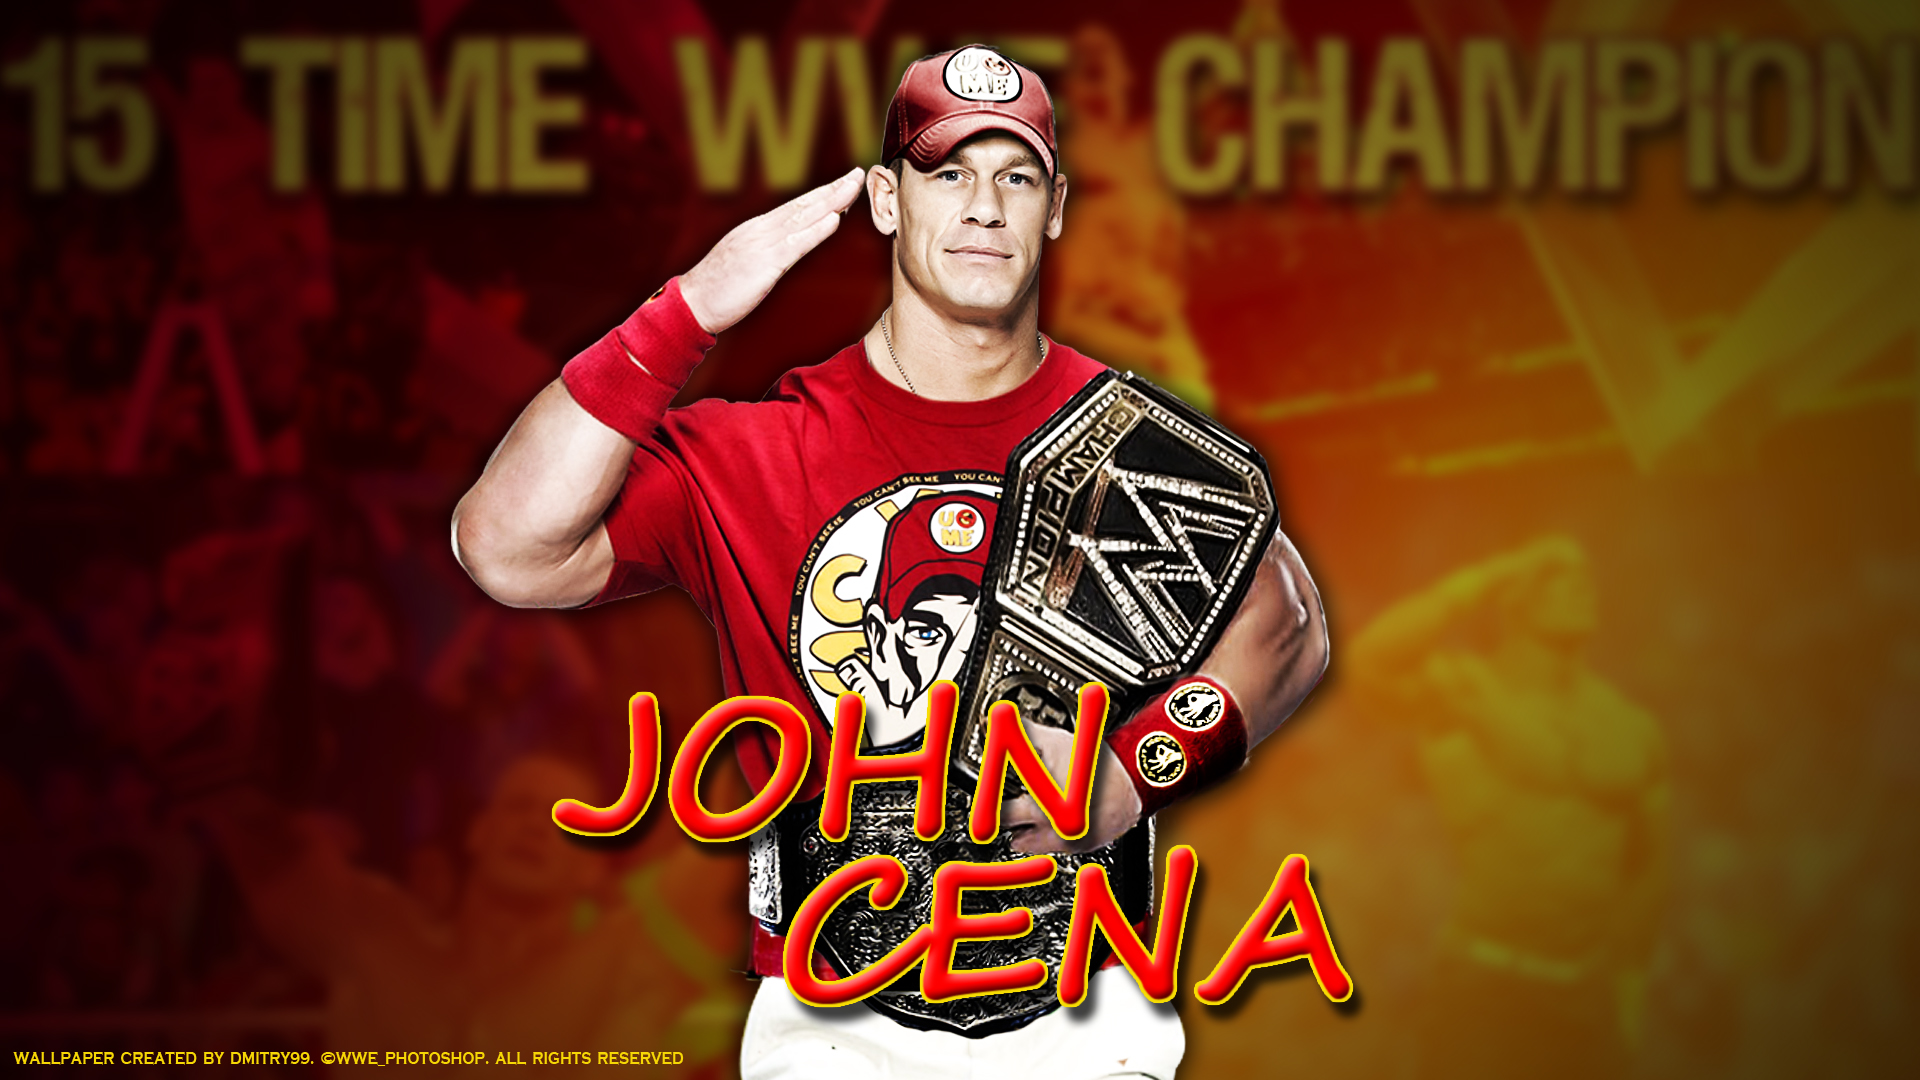 WWE John Cena Wallpapers 2015 HD 1920x1080